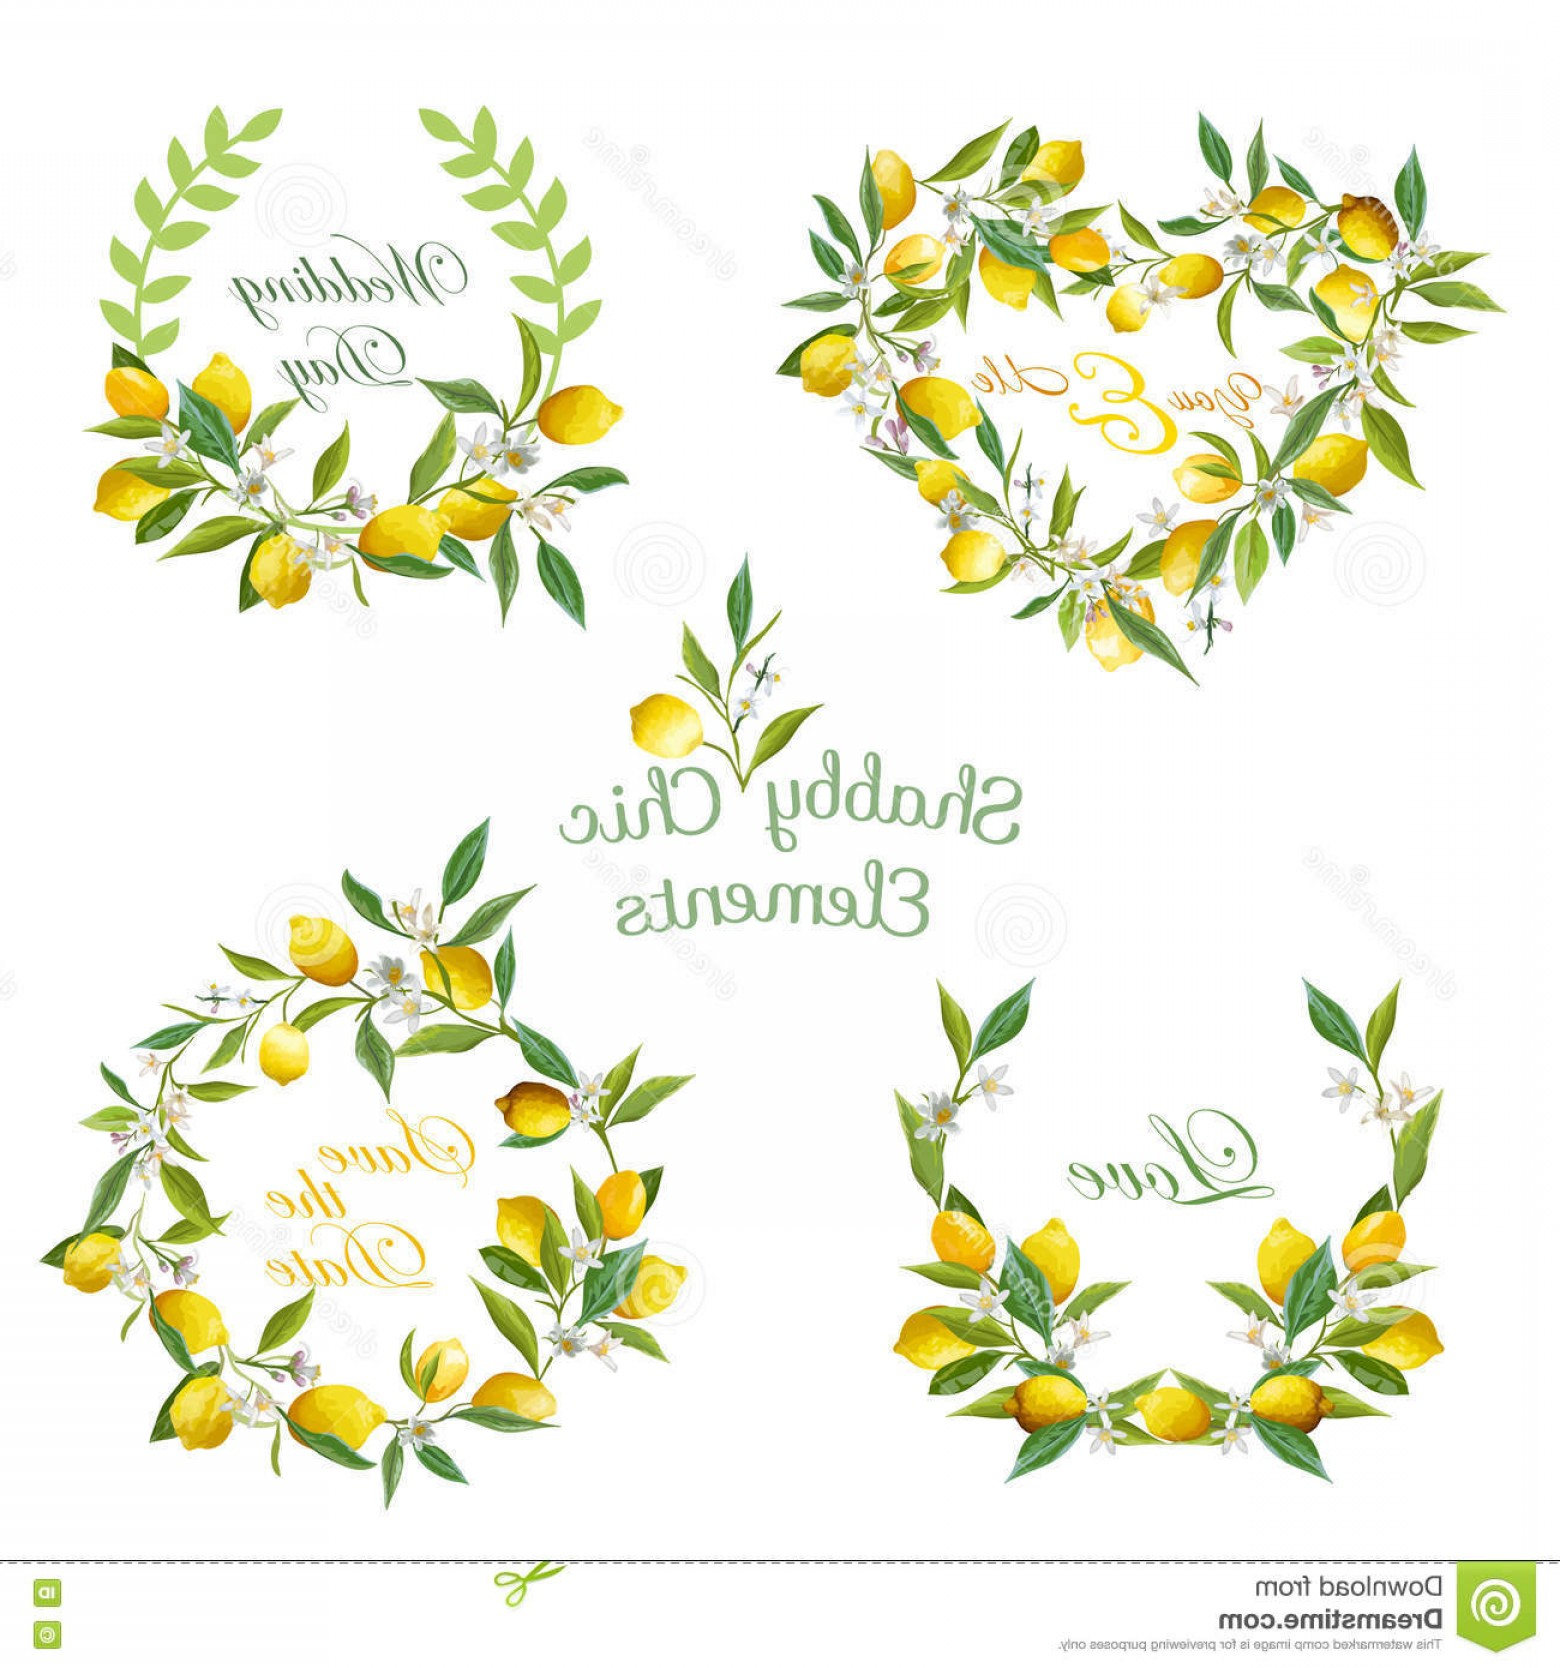 Half Leaf Wreath Vector: Stock Illustration Lemons Flowers Leaves Banners Tags Floral Wreath Vector Set Image